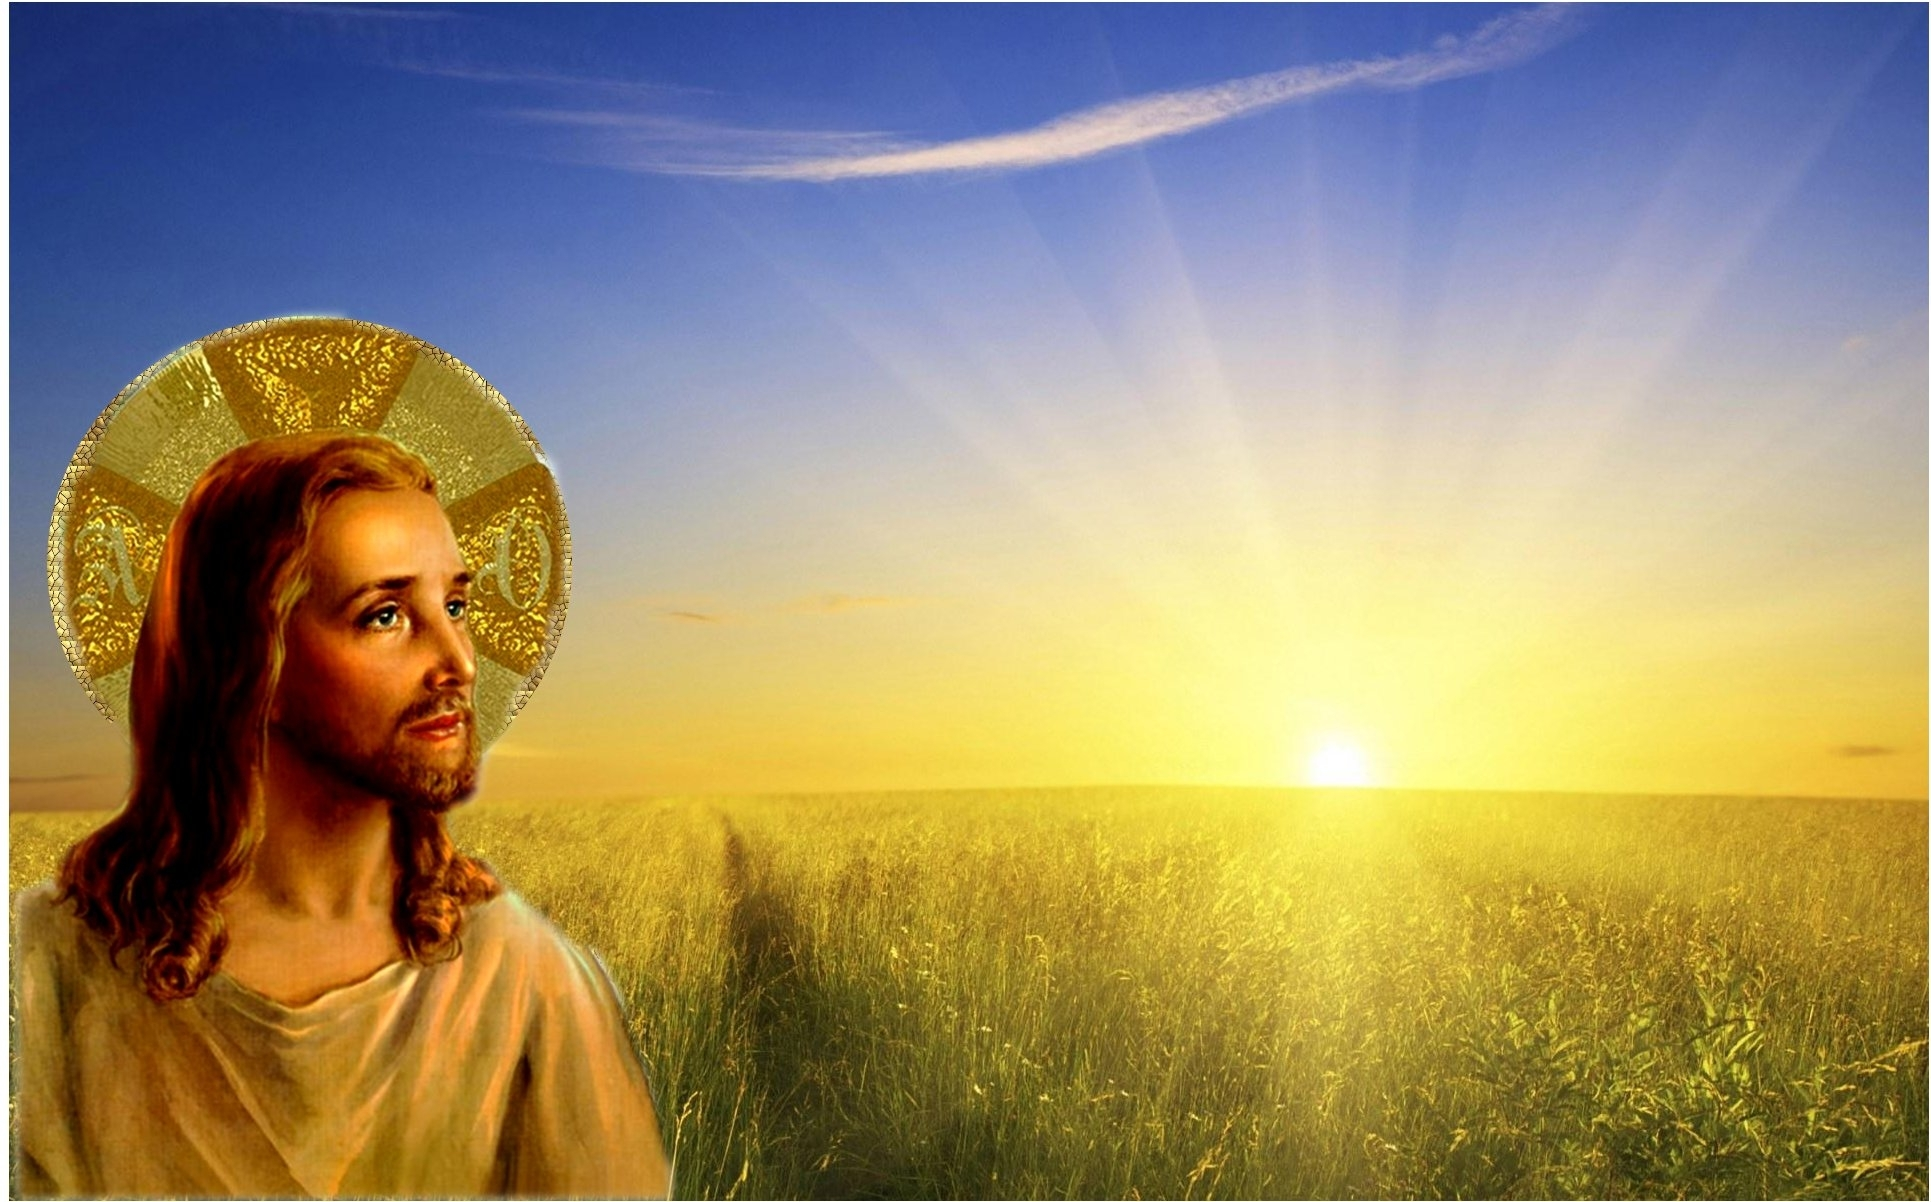 jesus christ wallpapers | excellent jesus christ images | fungyung